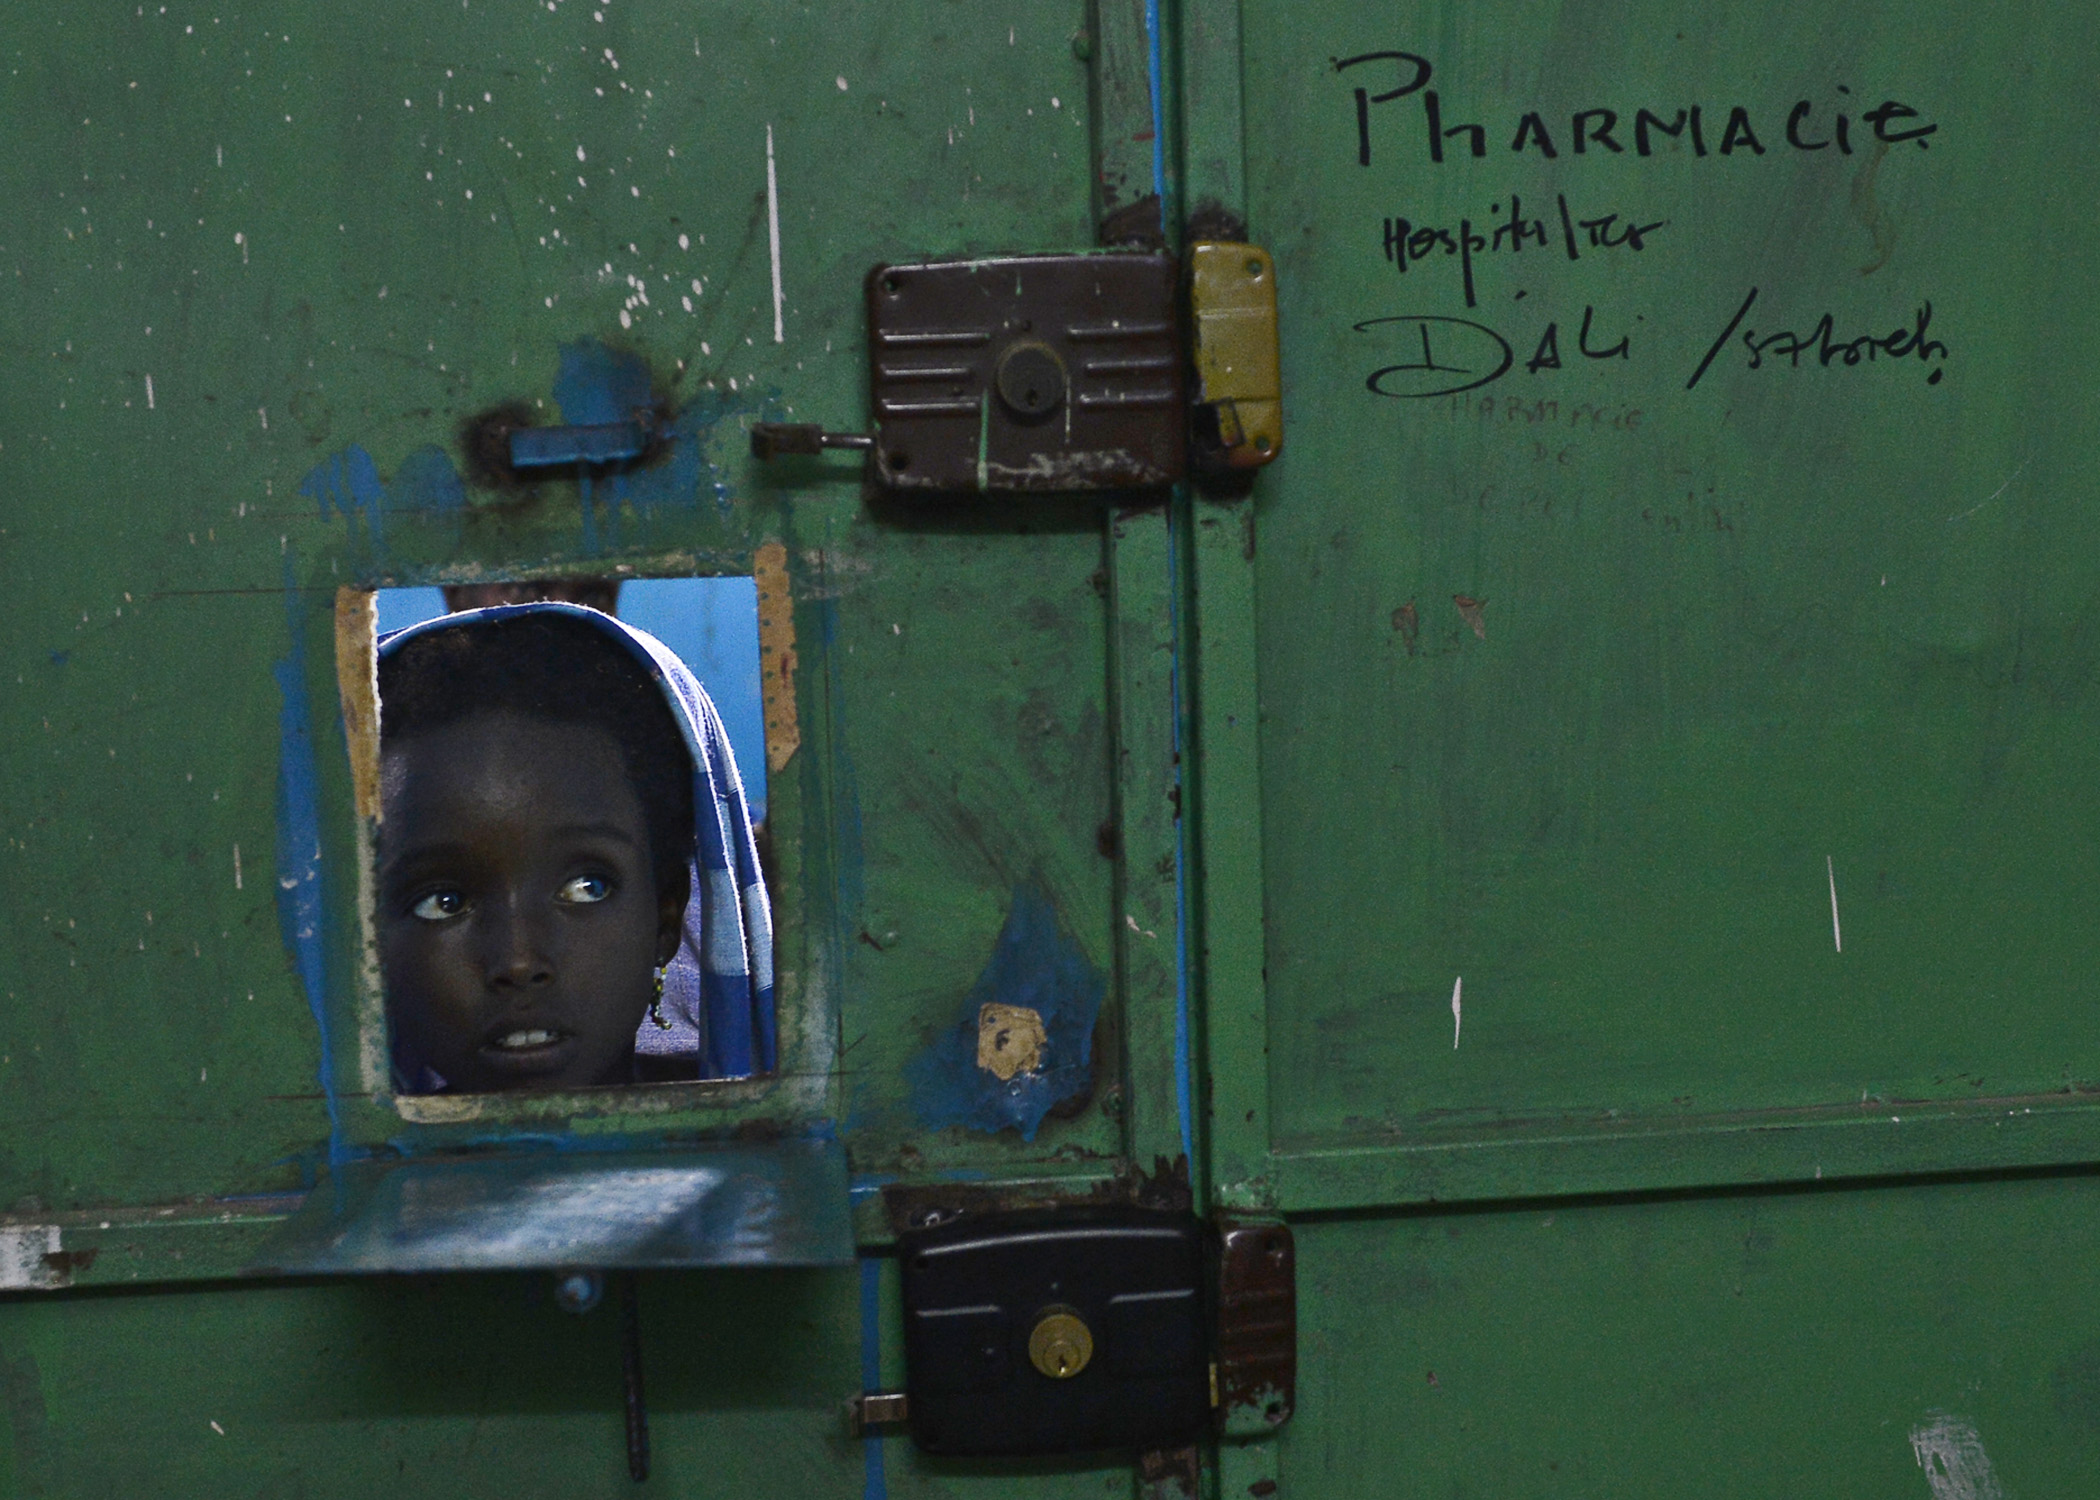 A child waits at a pharmacy window at the Ali Sabieh Medical Clinic in Djibouti, Africa, Sept. 12, 2015. Combined Joint Task Force-Horn of Africa partnered with Djibouti's Ministry of Health to host a Medical Civic Action Program outreach event. They provided an obstetrician-gynecologist, pediatrician, dentist and ophthalmologist for the rural people. (U.S. Air Force photo by Senior Airman Nesha Humes)